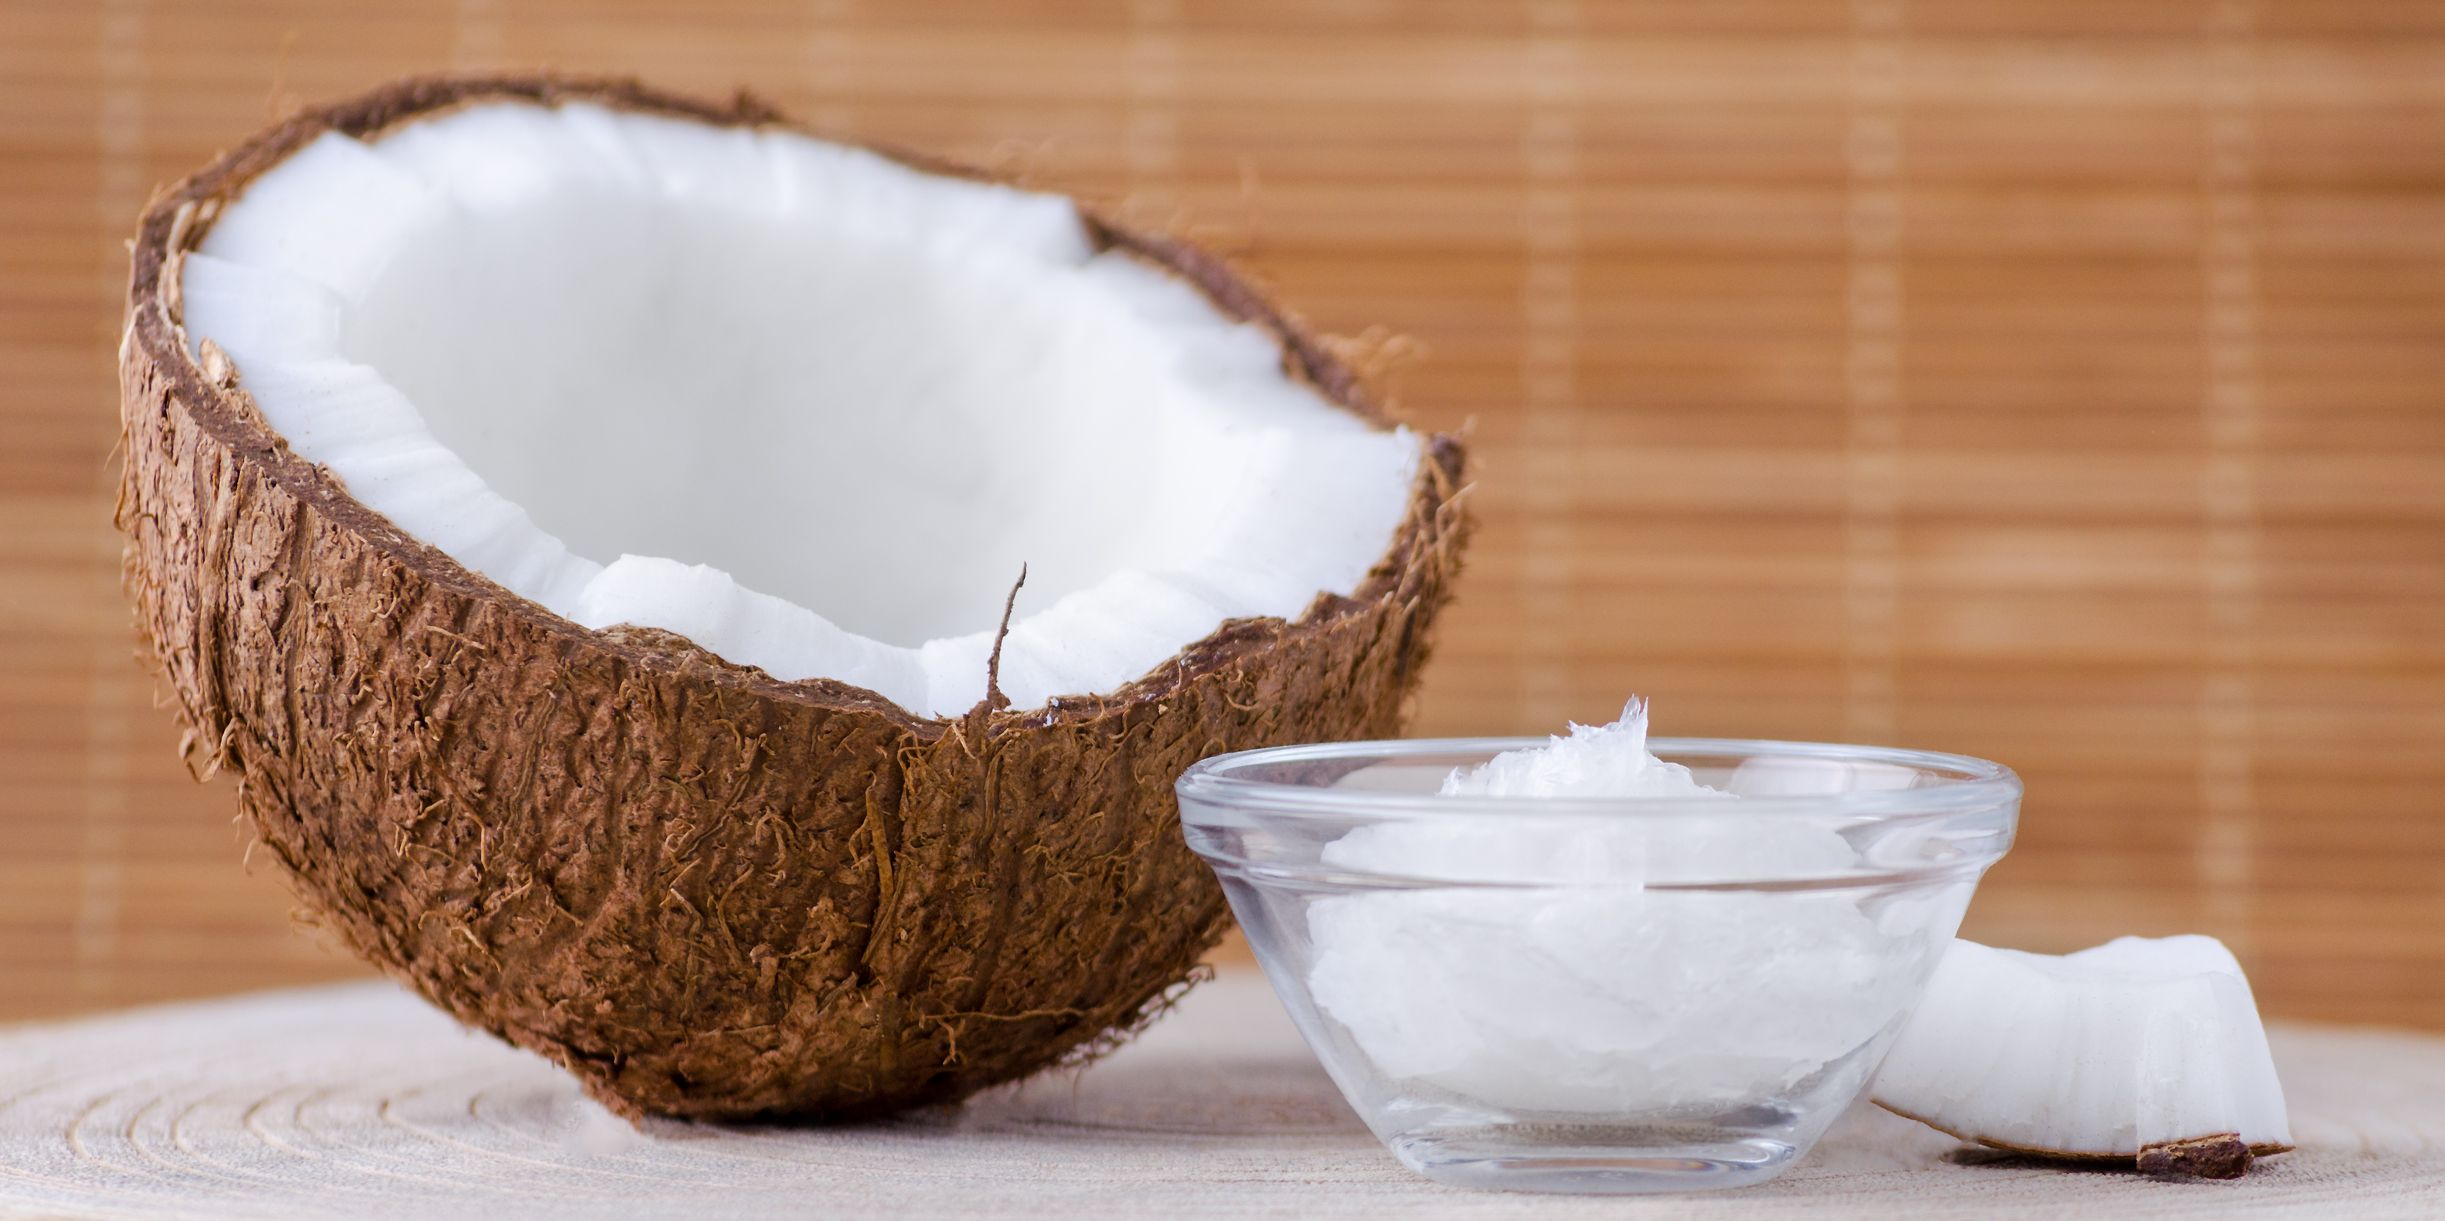 How to Choose the Best Coconut Oil for Your Skin and Hair, According to Dermatologists